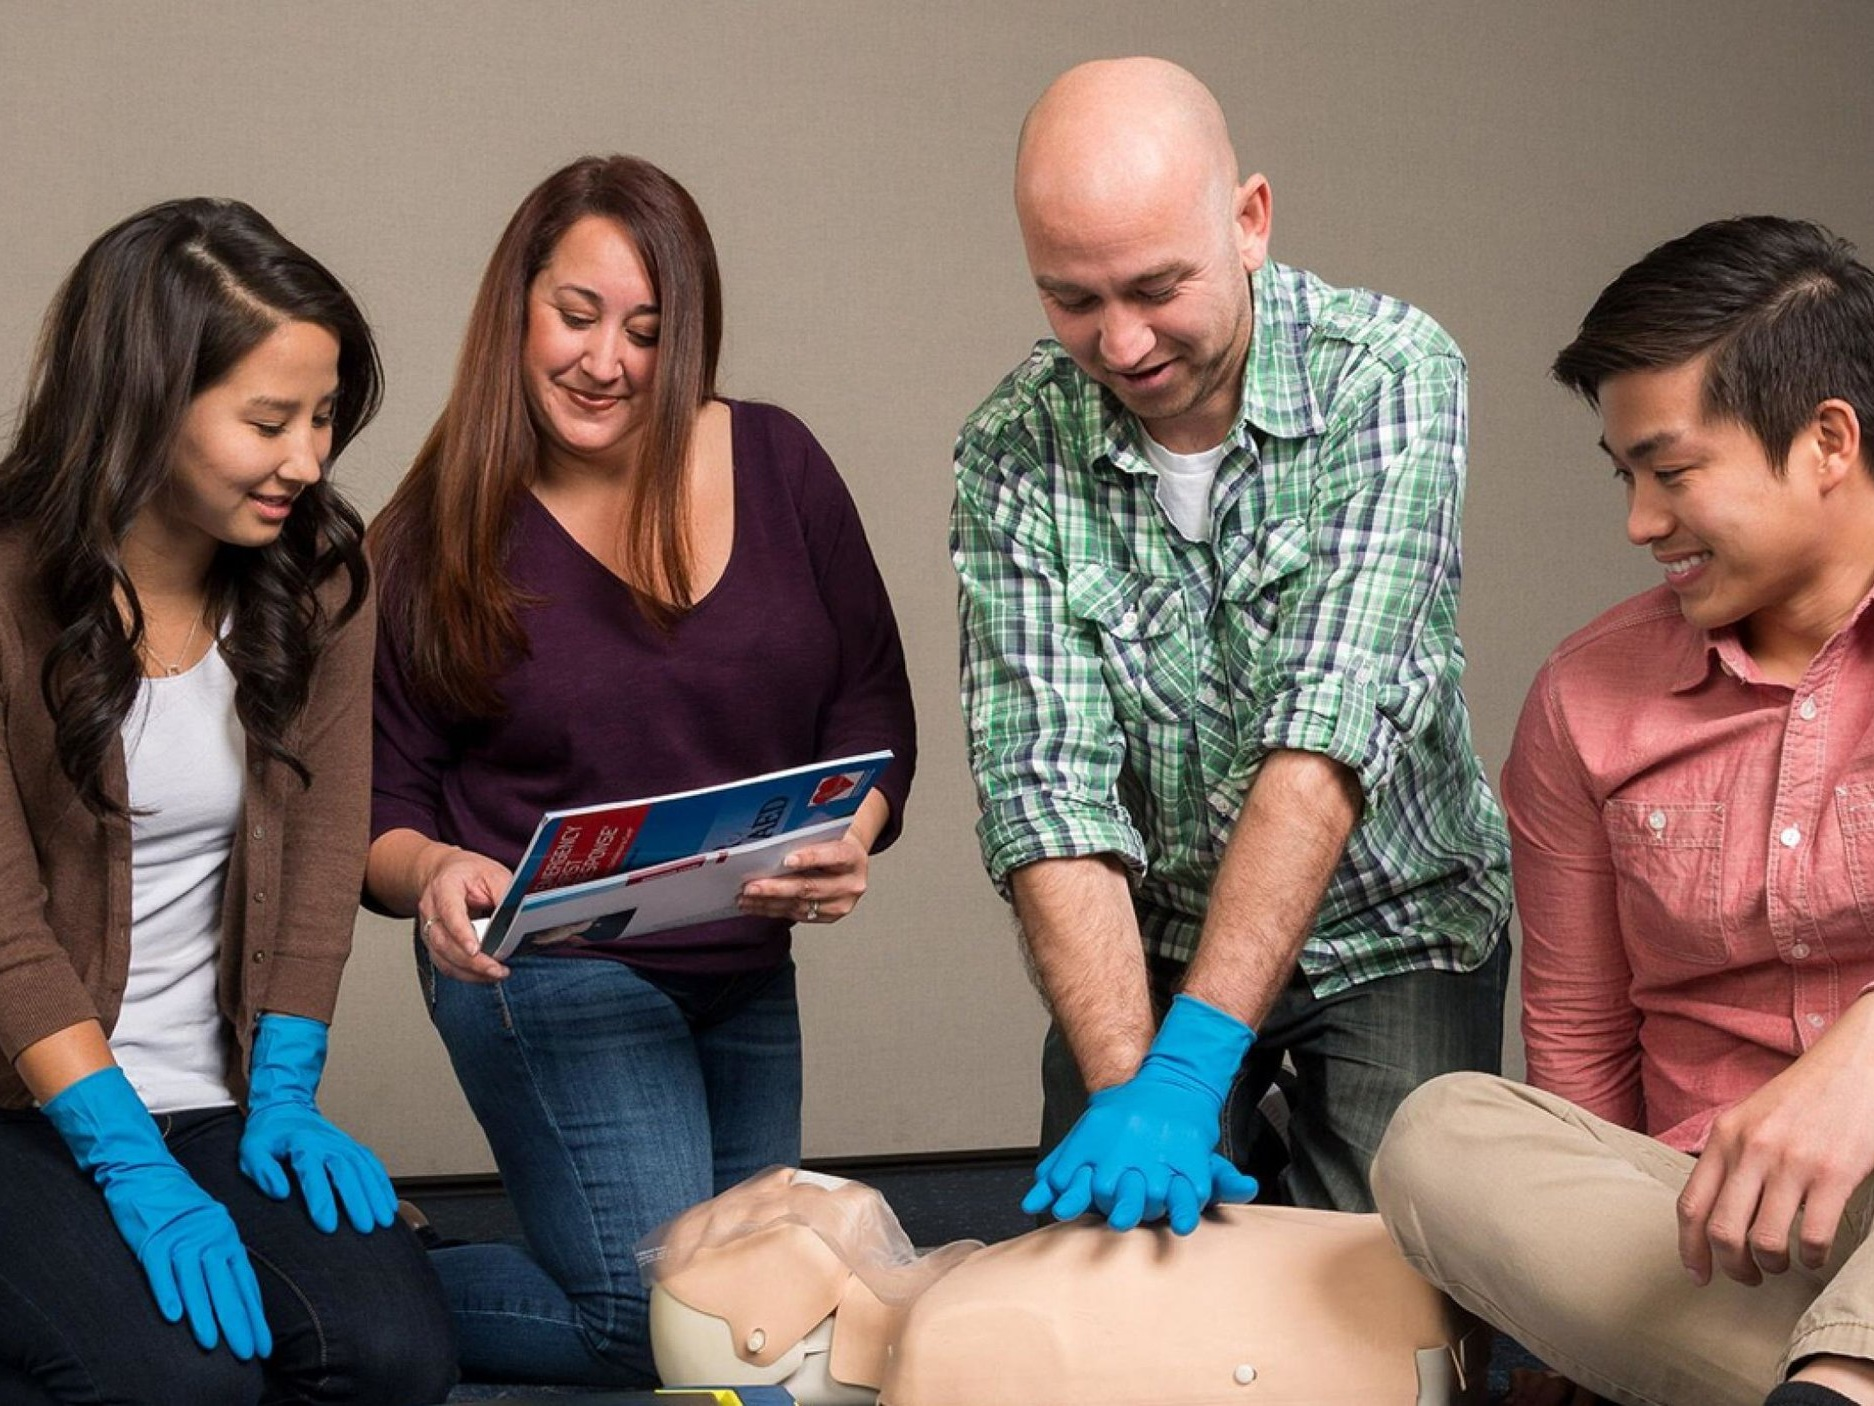 Step 2 - Emergency First Response (First Aid) Training - To Teach you simple-to-follow steps for CPR, first aid and emergency care and help build your confidence as a rescuer when faced with a medical emergency